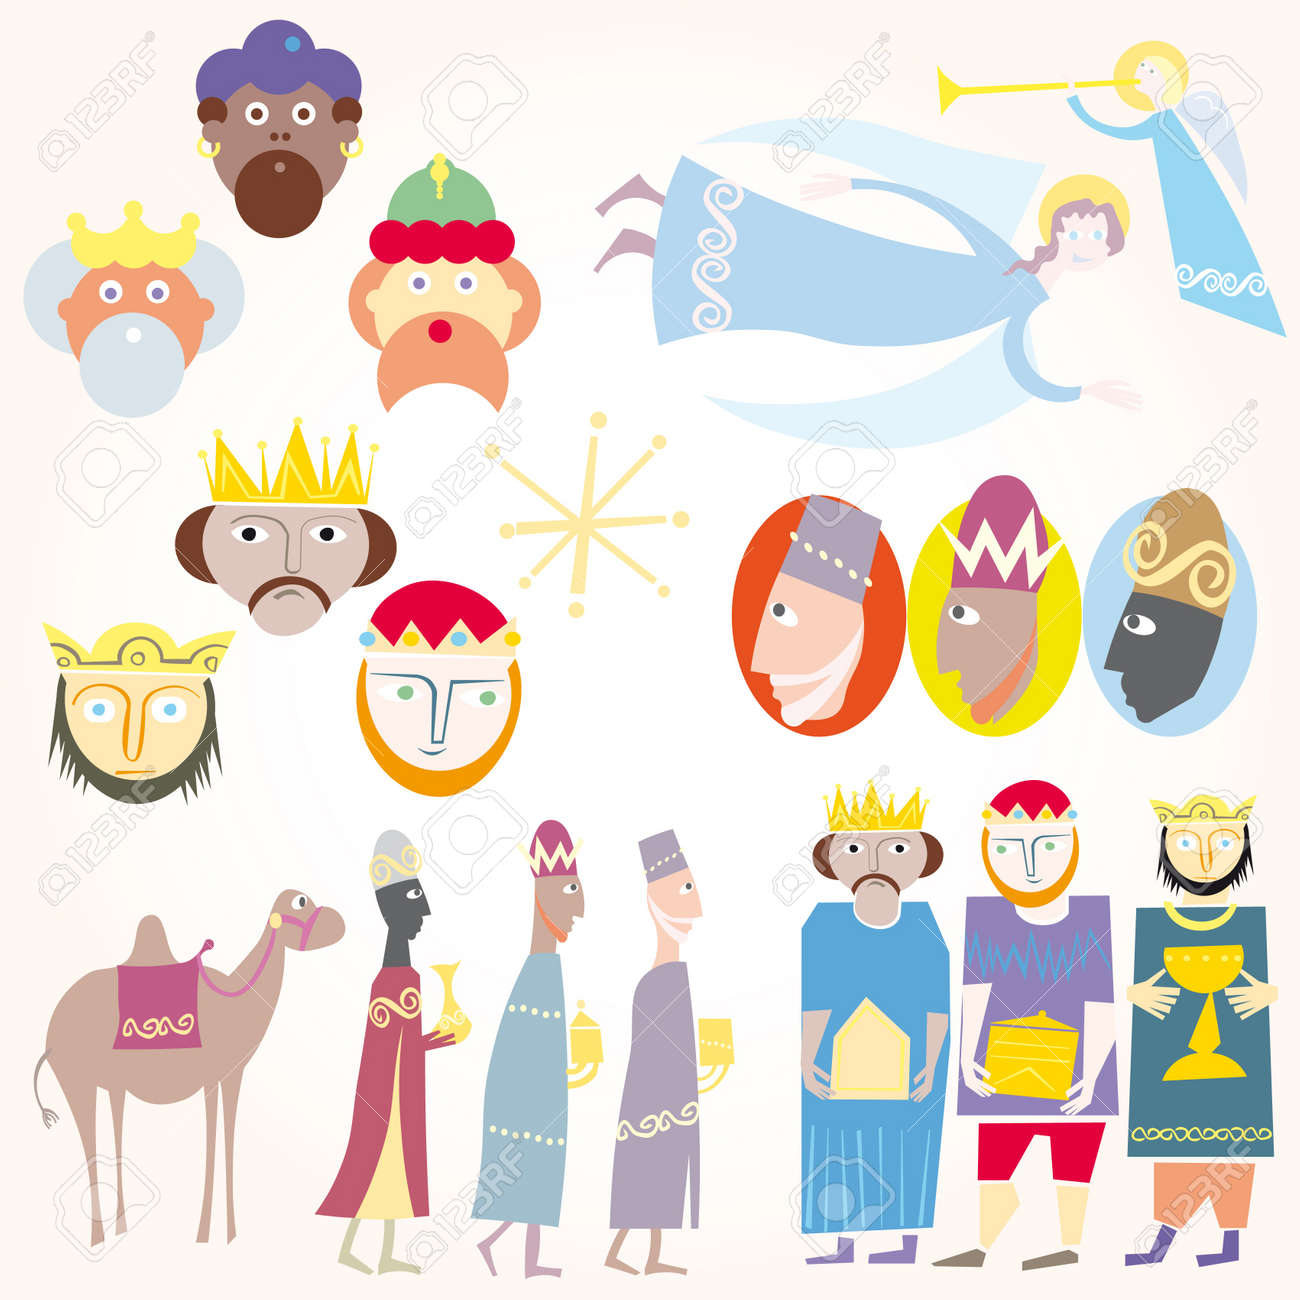 Three Wise Men Christmas Set. Royalty Free Cliparts, Vectors, And ...